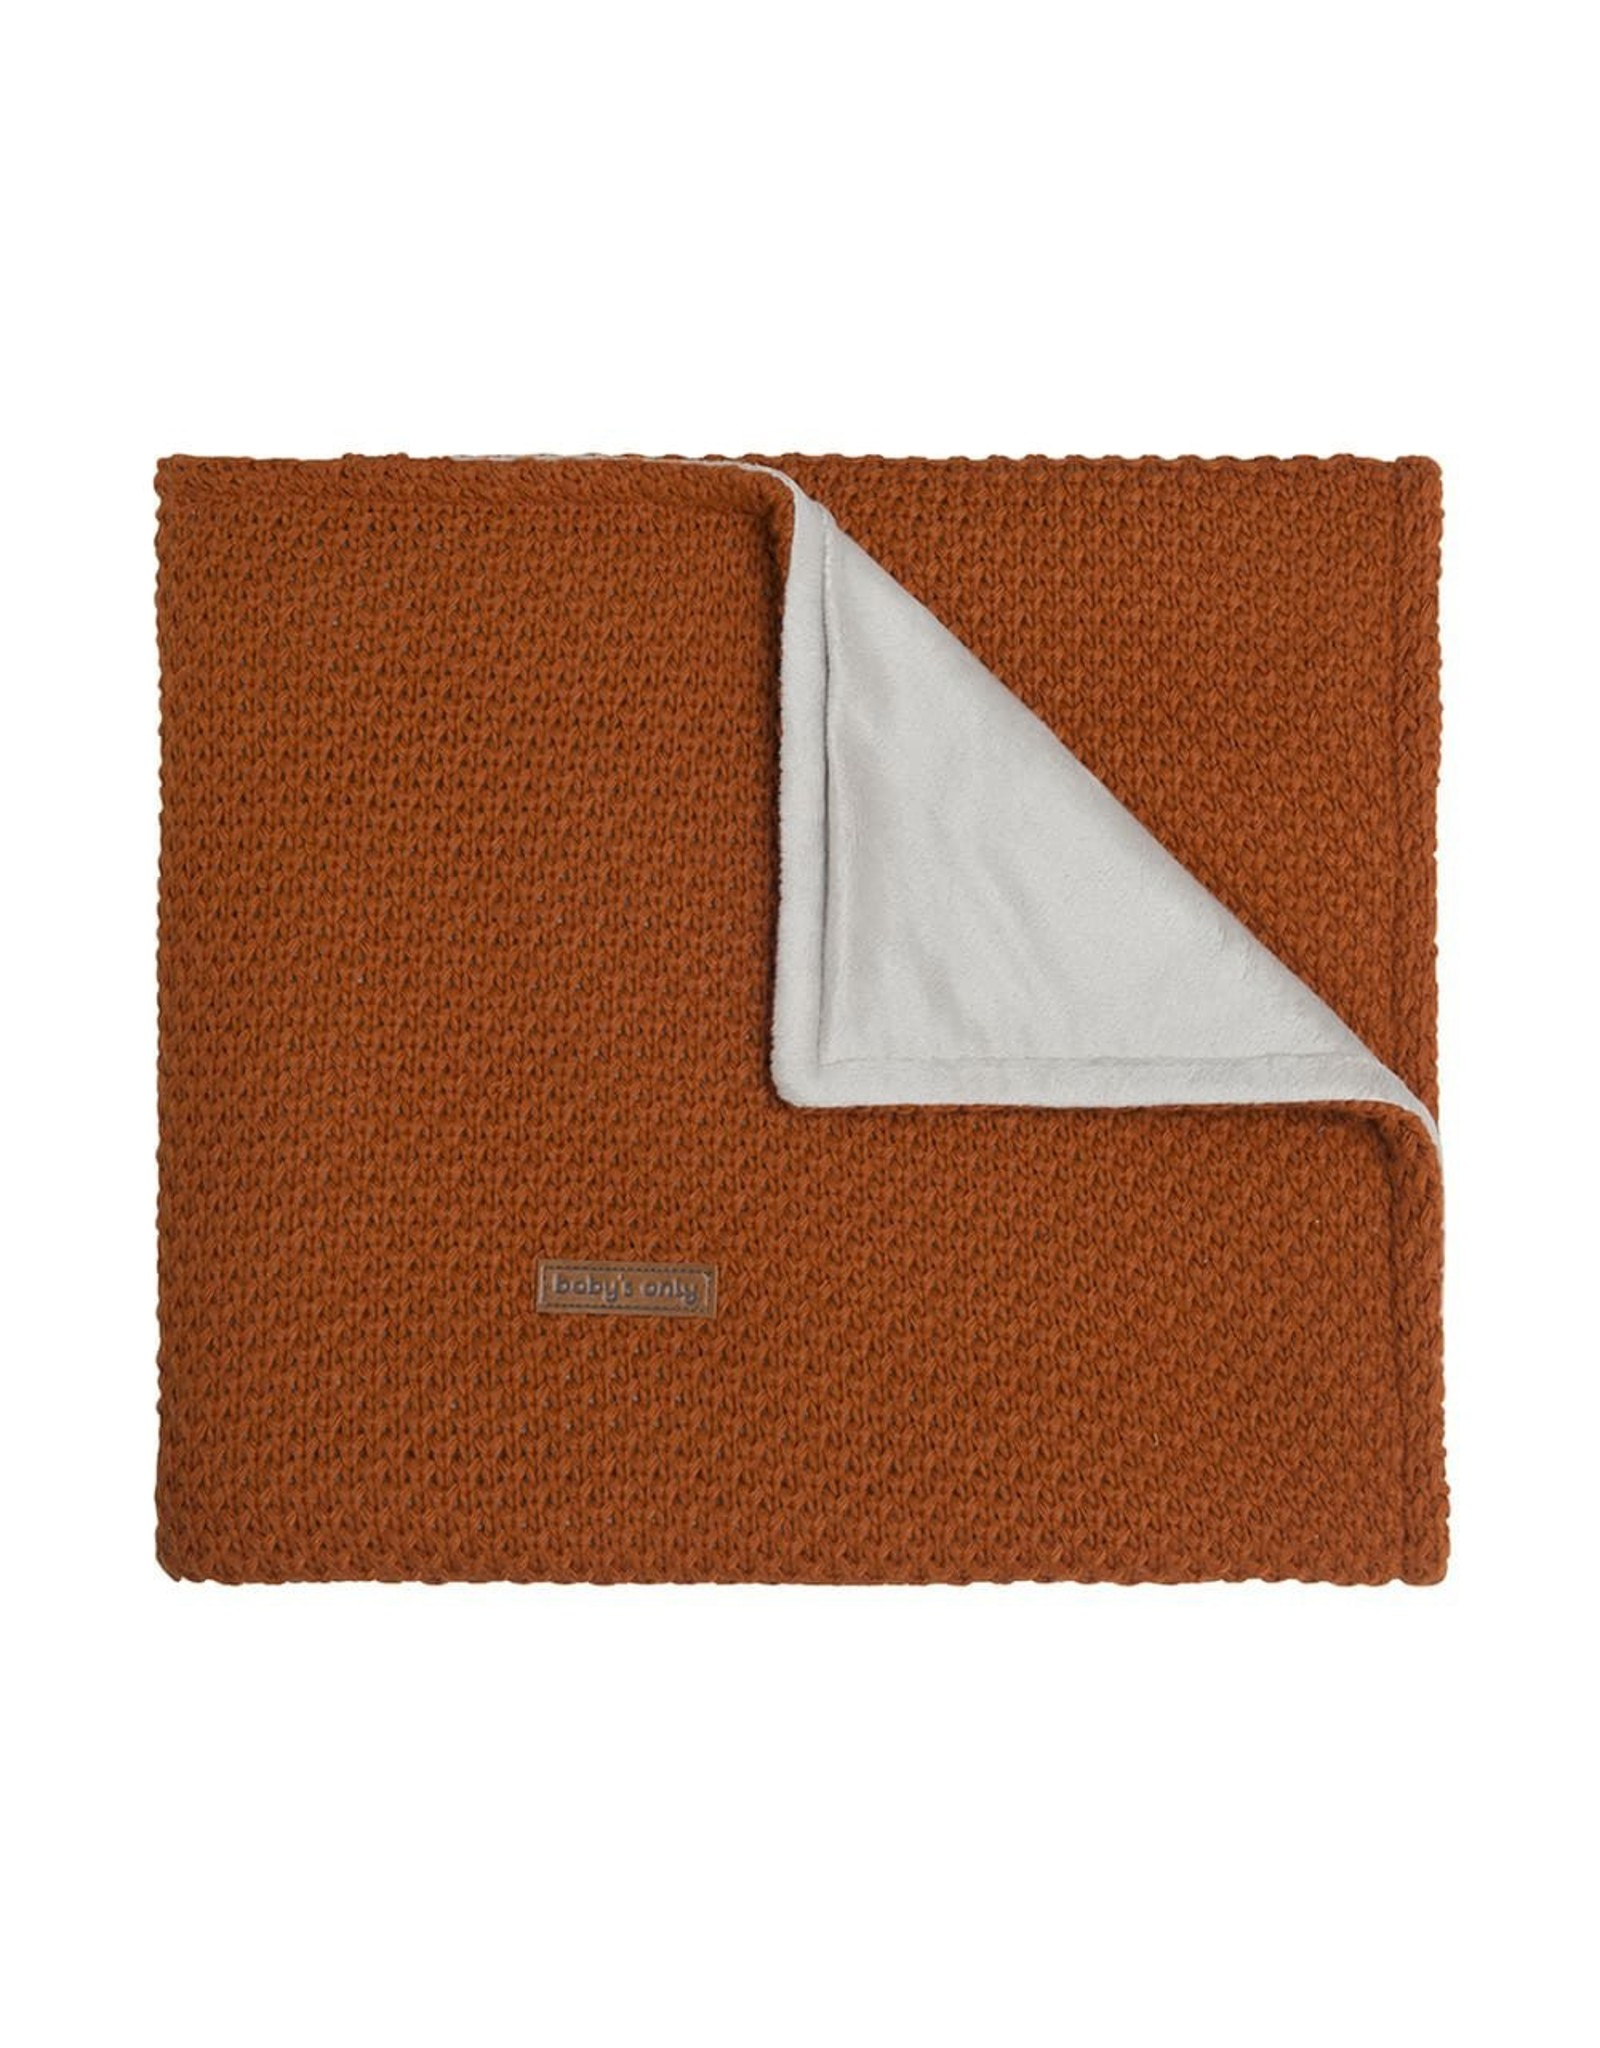 Baby's only Crib blanket flavor, Roest